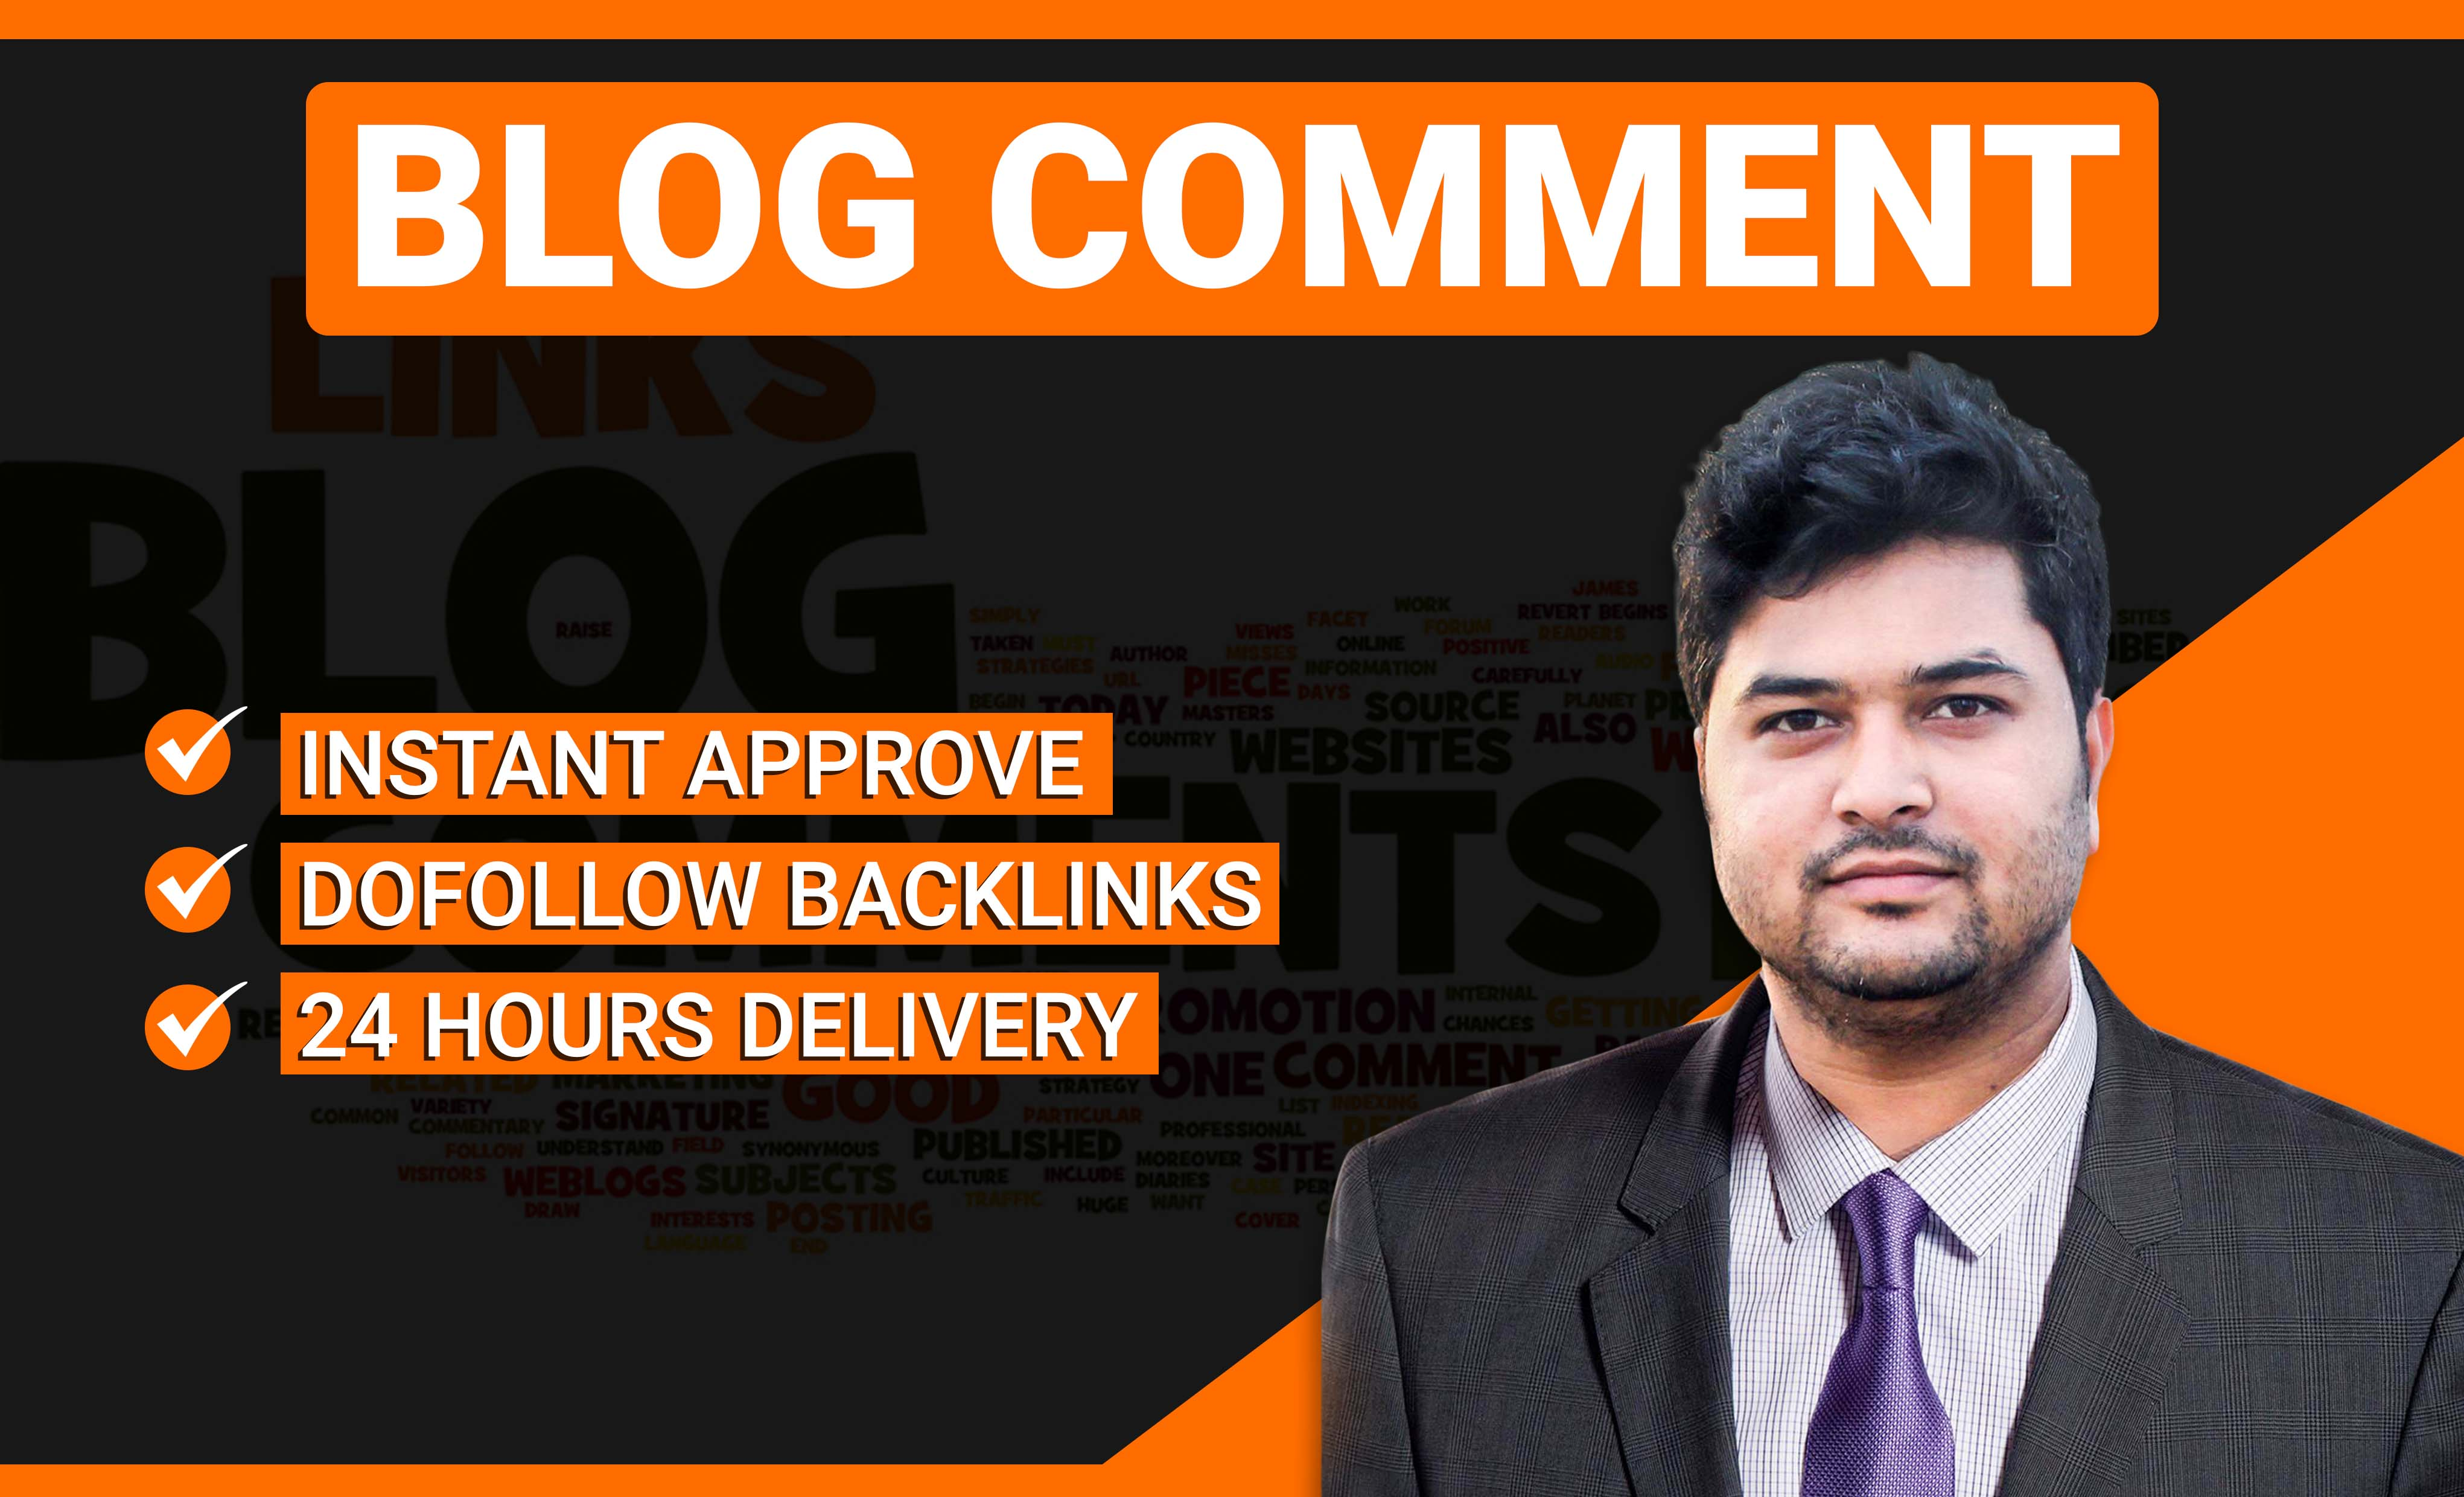 BLOG COMMENT- INSTANT APPROVE DOFOLLOW BACKLINKS